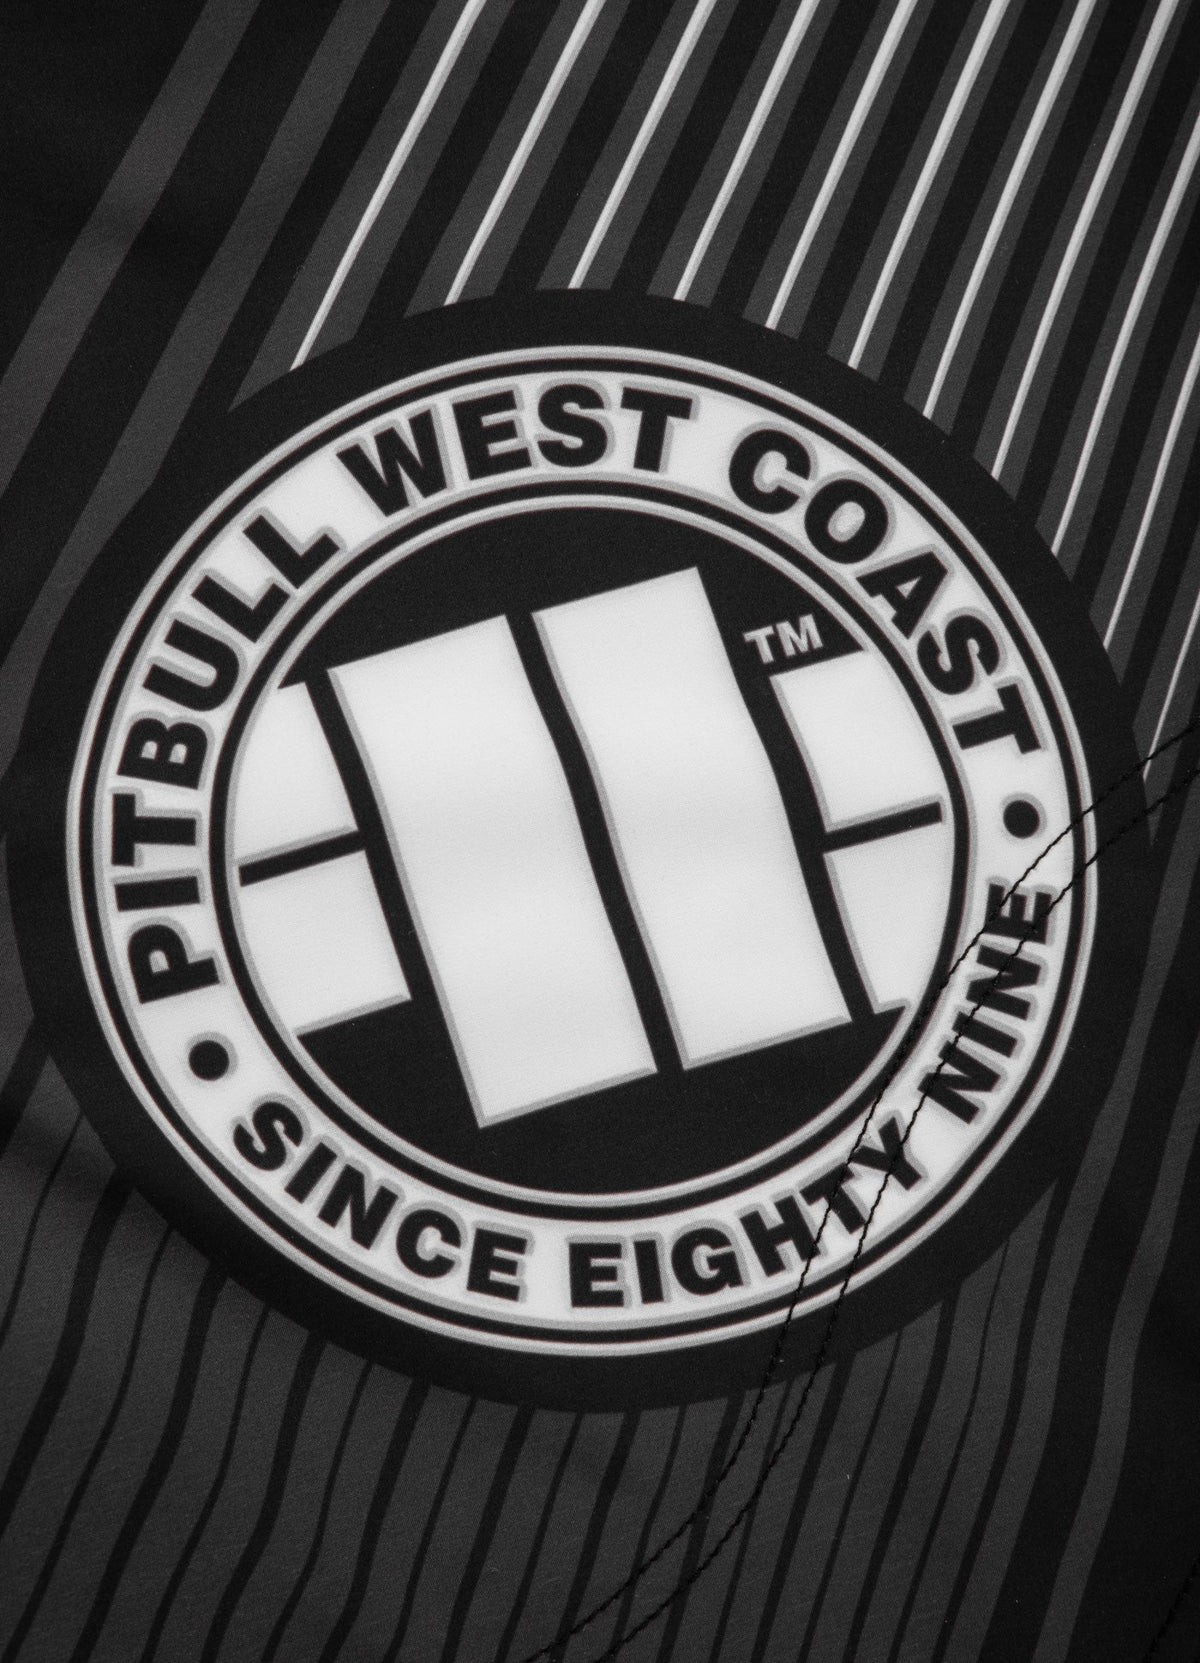 Grappling Shorts Performance 202 PLAYER ONE Black - Pitbull West Coast U.S.A.